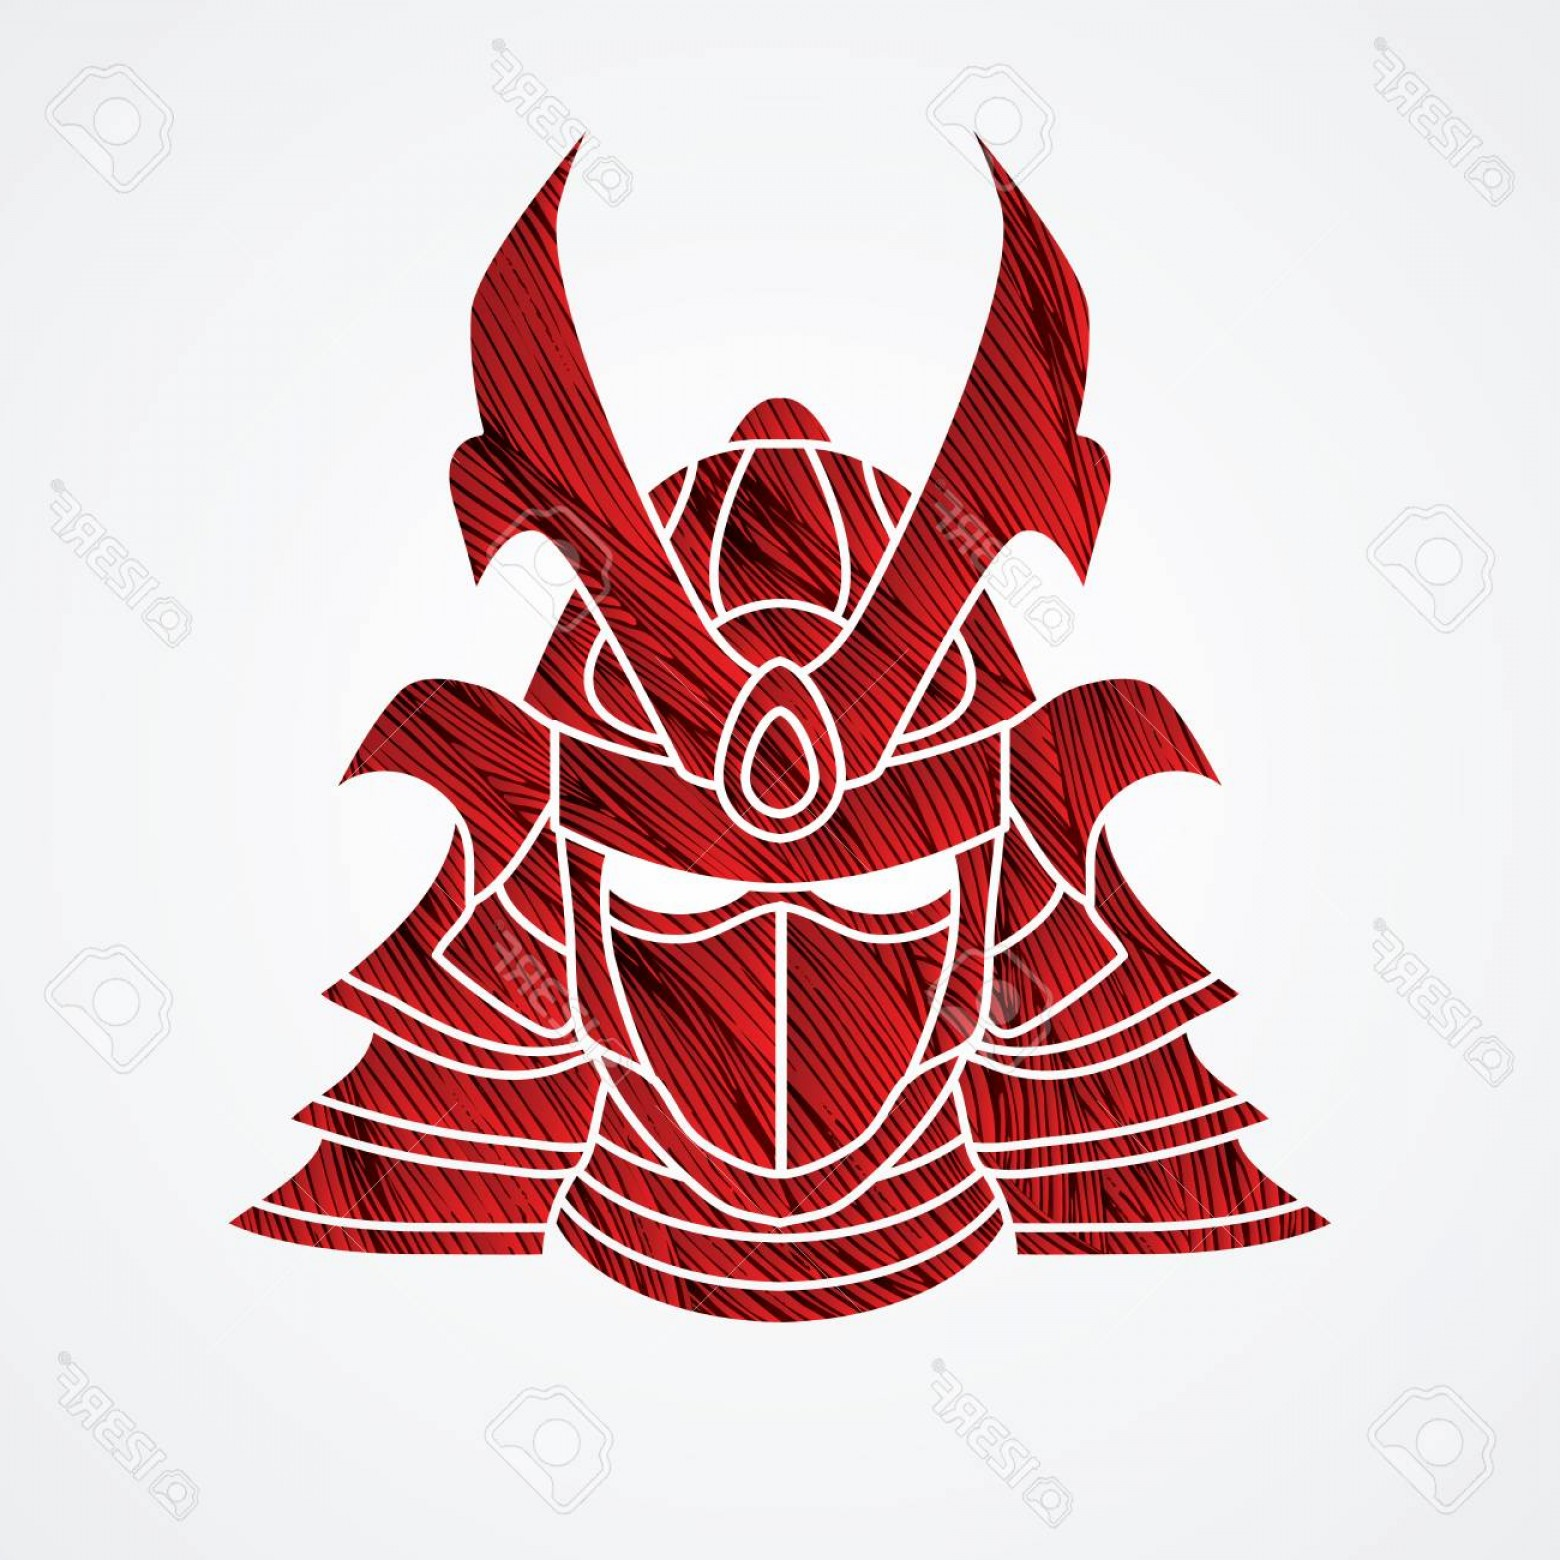 Red Samurai Vector: Photostock Vector Samurai Mask Designed Using Red Grunge Brush Graphic Vector